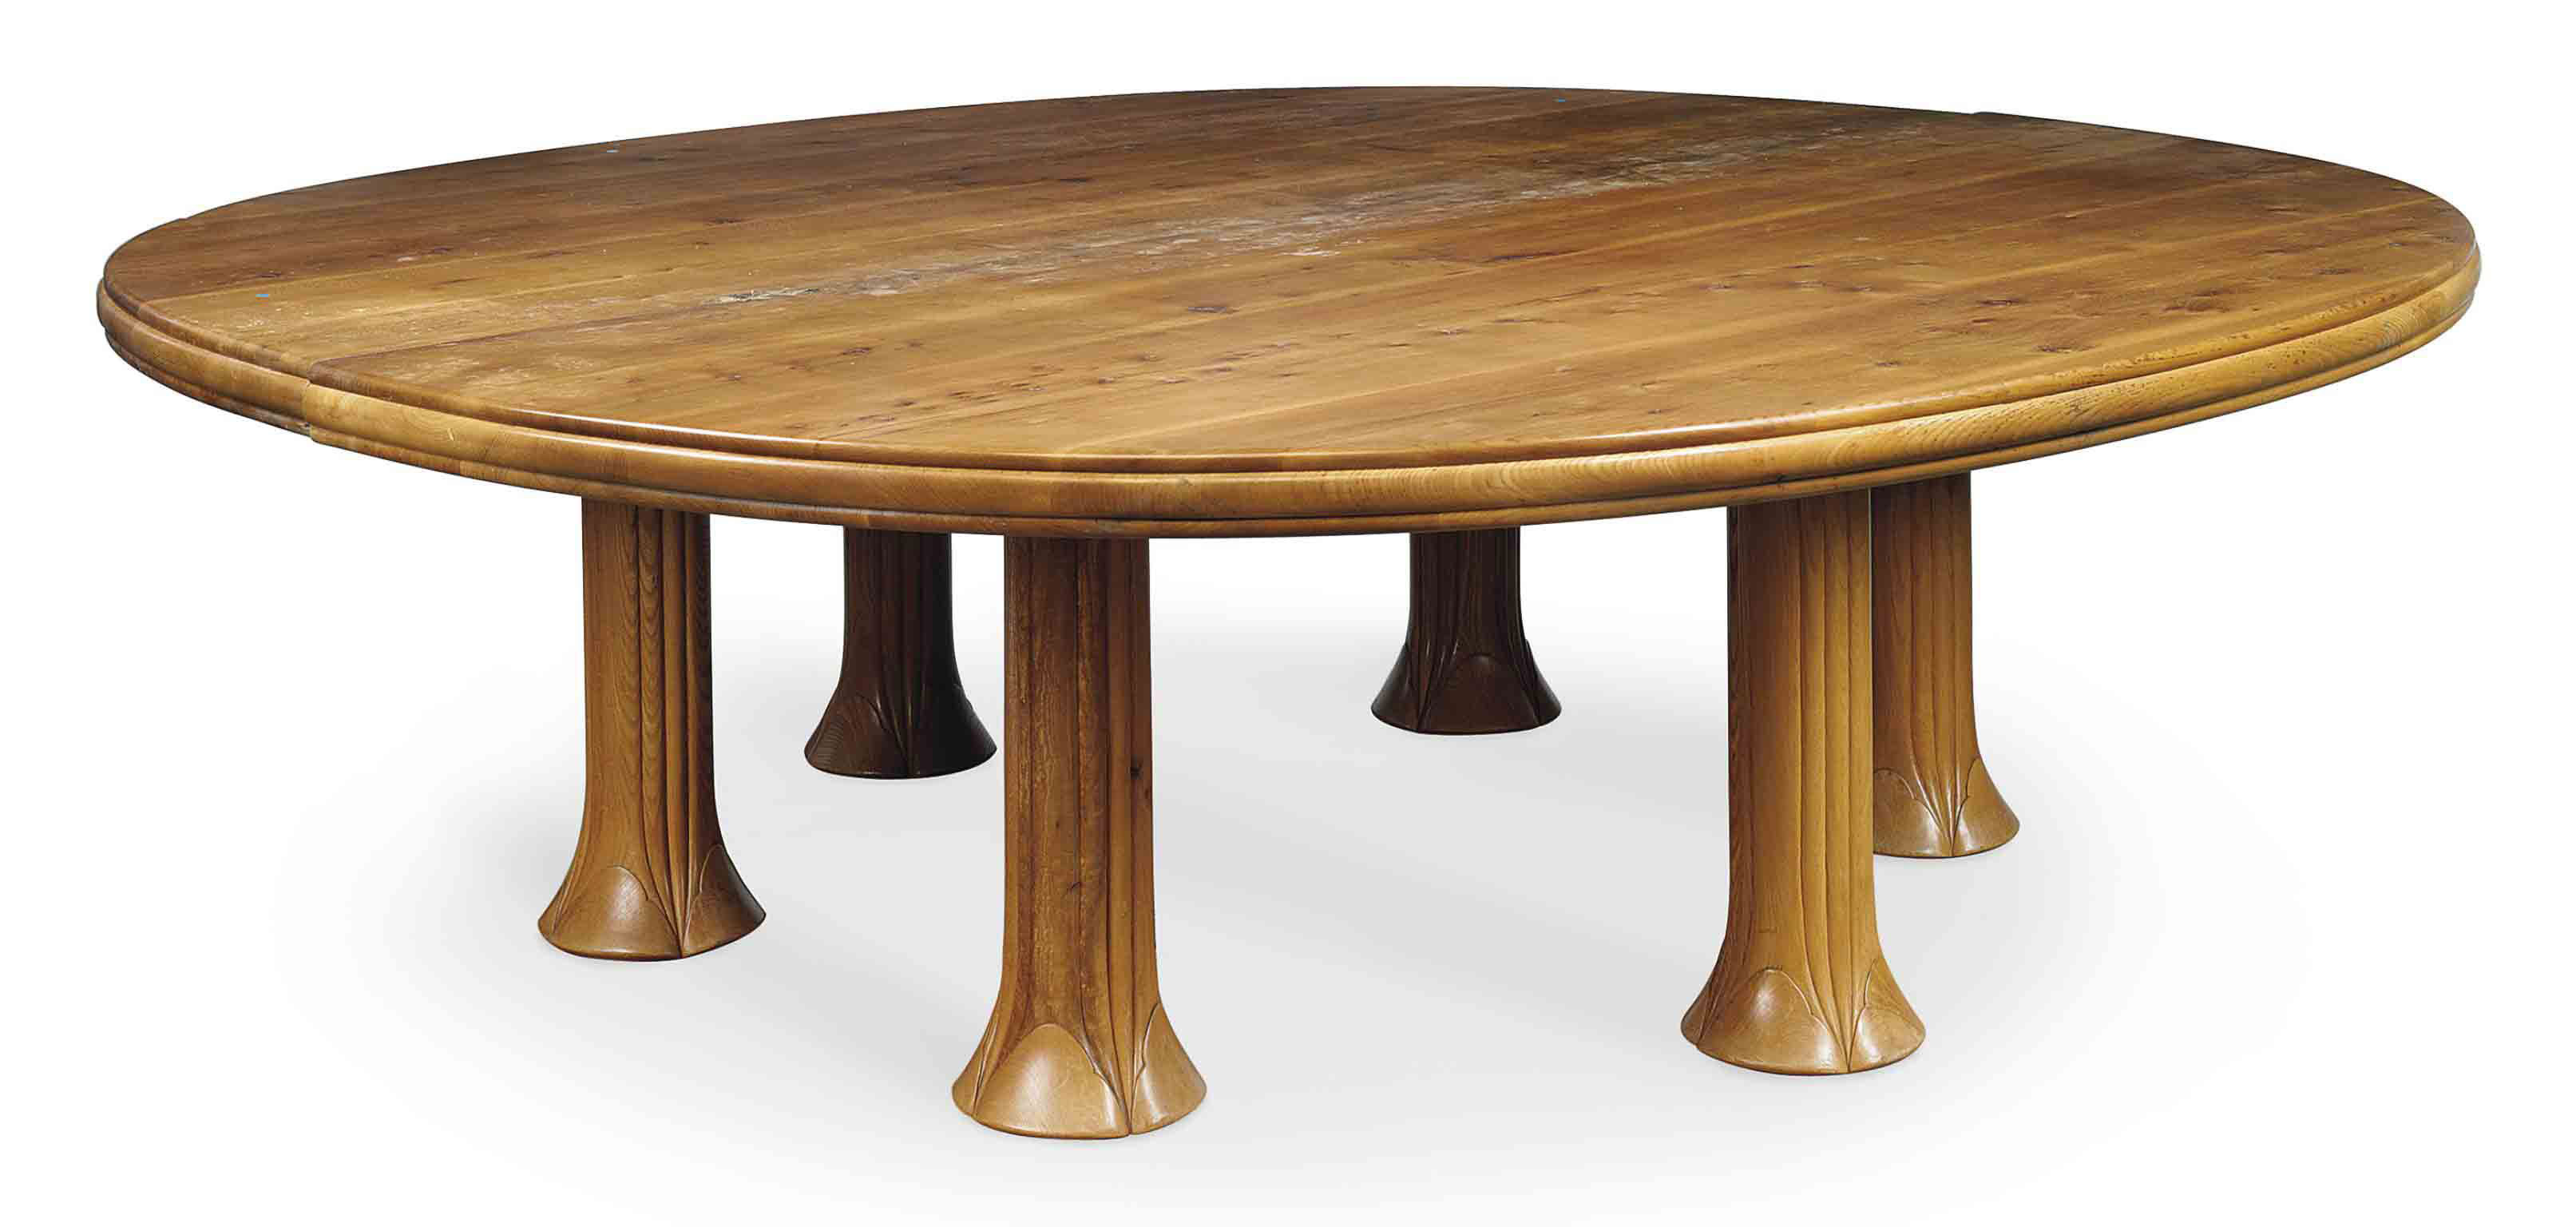 A JOHN MAKEPEACE ENGLISH ELM DINING TABLE